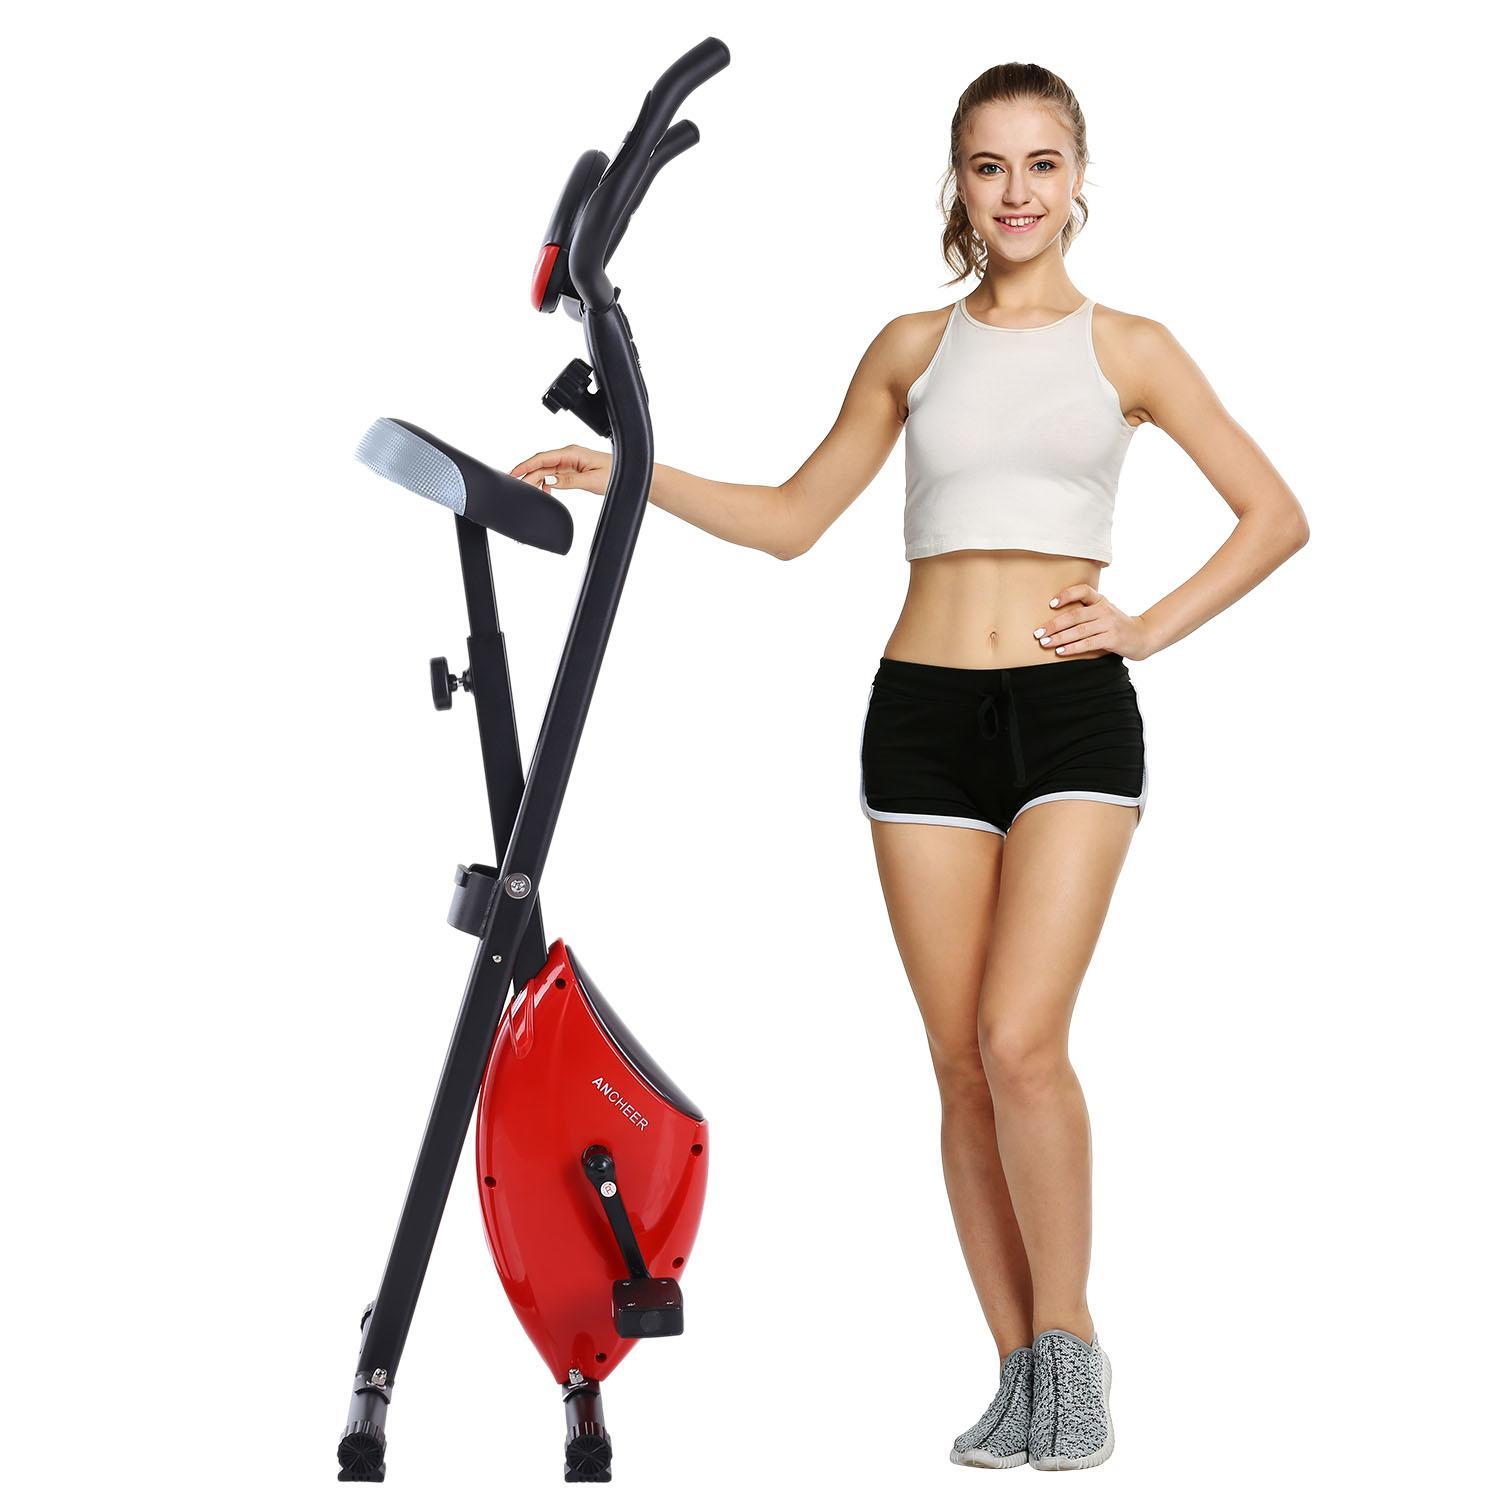 Vertical Climber Folding 2 In 1 Exercise Climbing Machine, Exercise Equipment Climber for Home Gym, Exercise Bike for... by